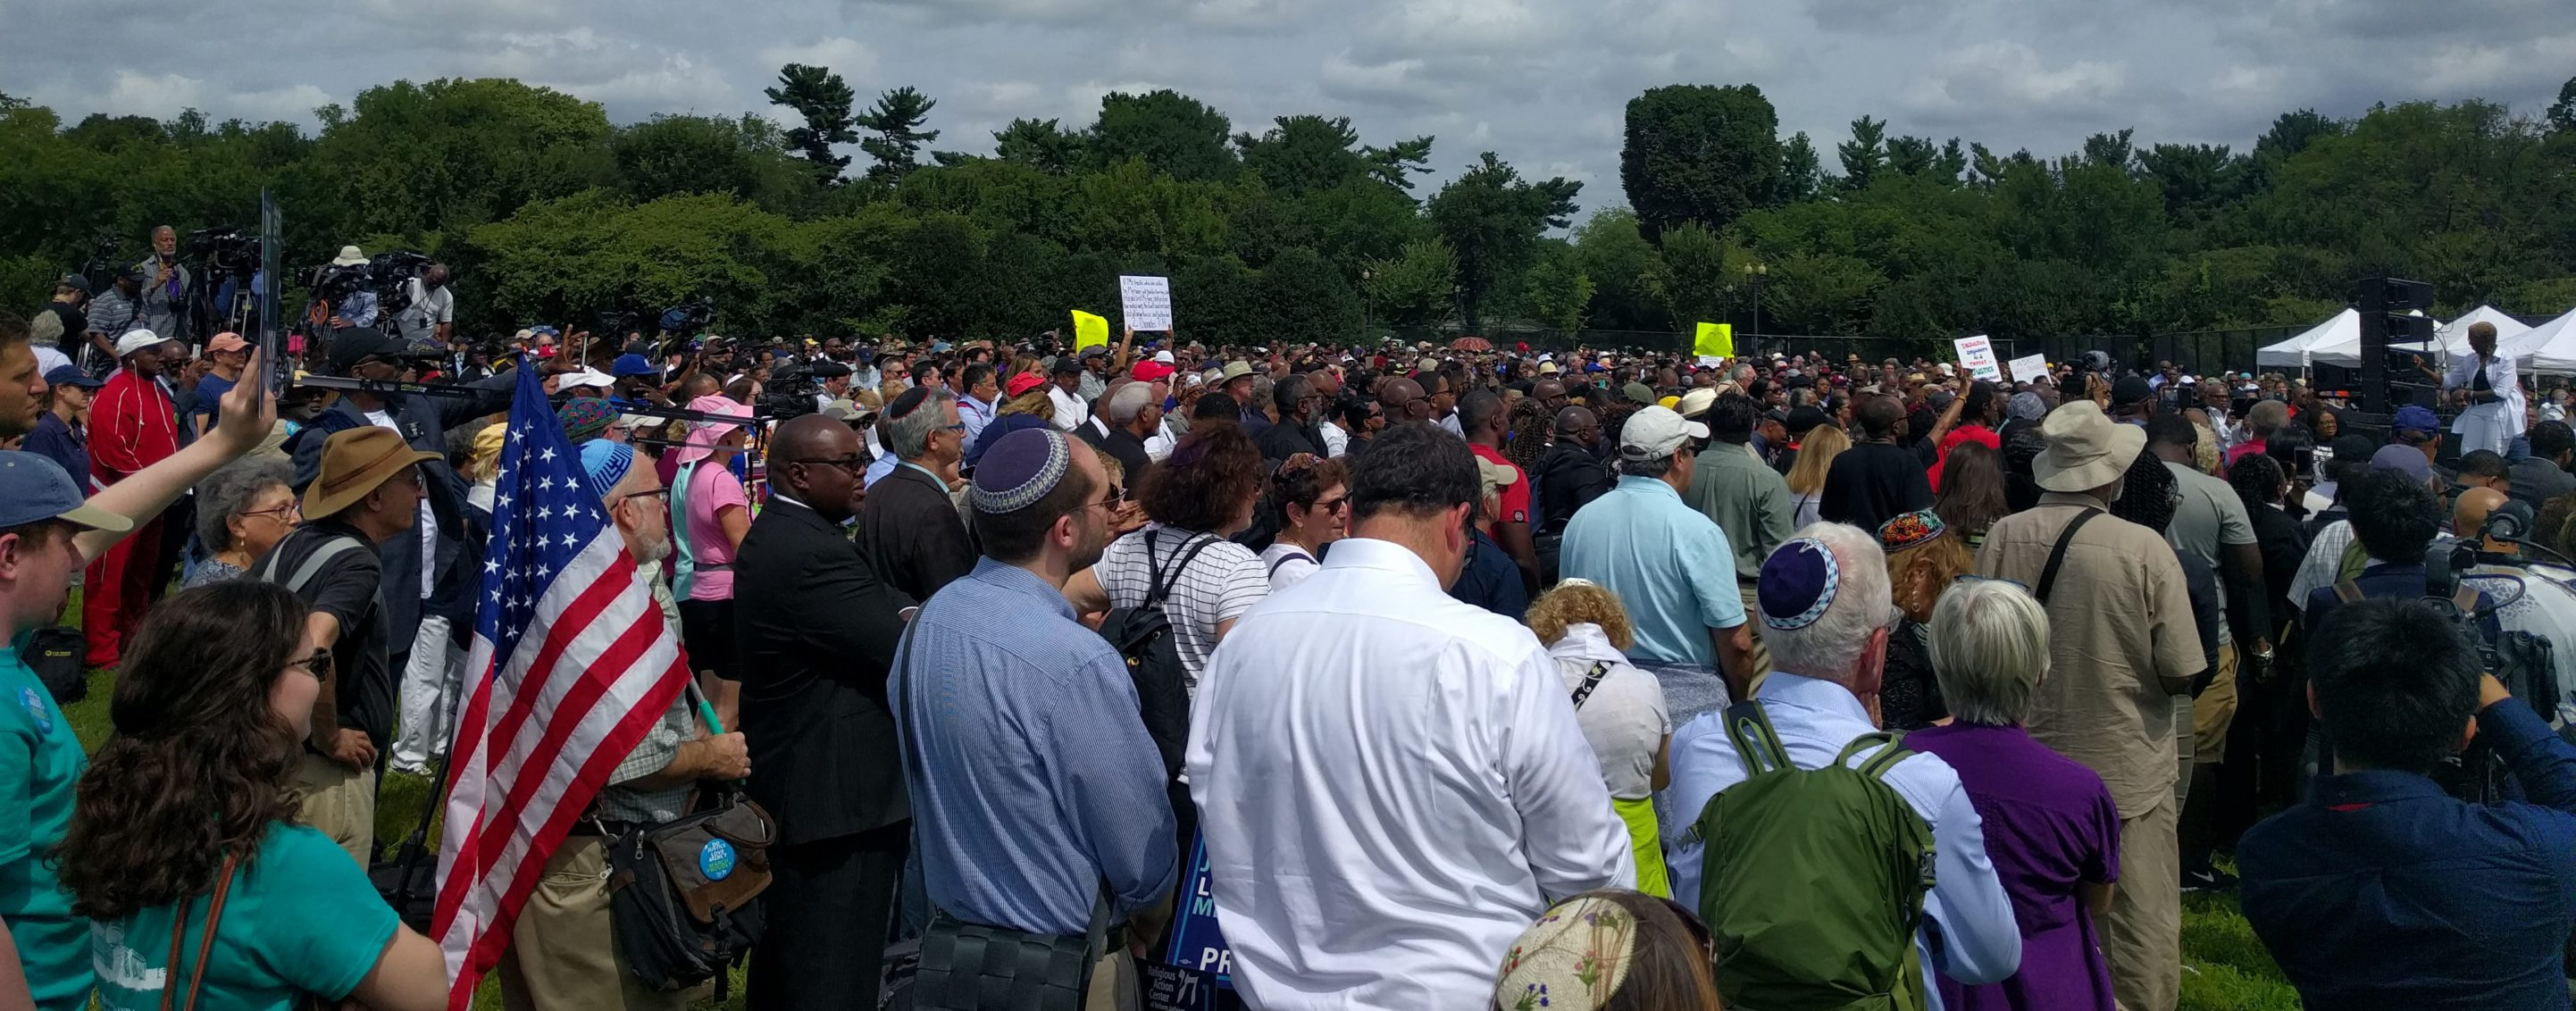 54 Years After Historic March On Washington, Over 3000 Religious Leaders Continue the March For Civil Rights